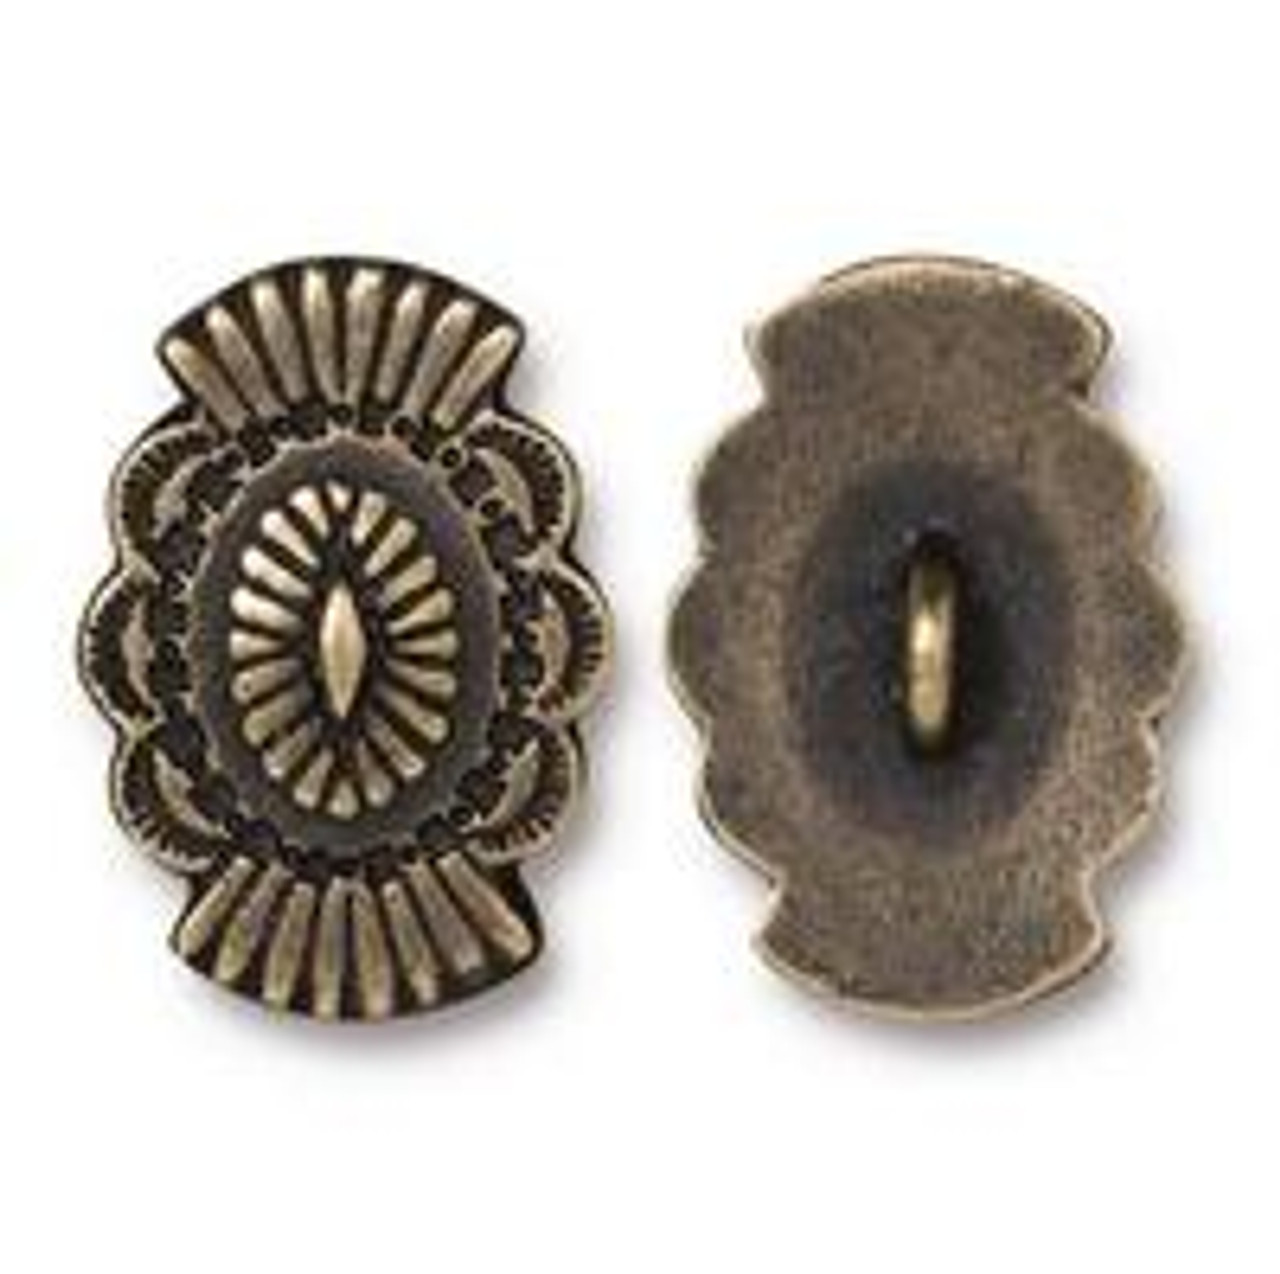 Antique Gold Plated Western Button (1 Piece)